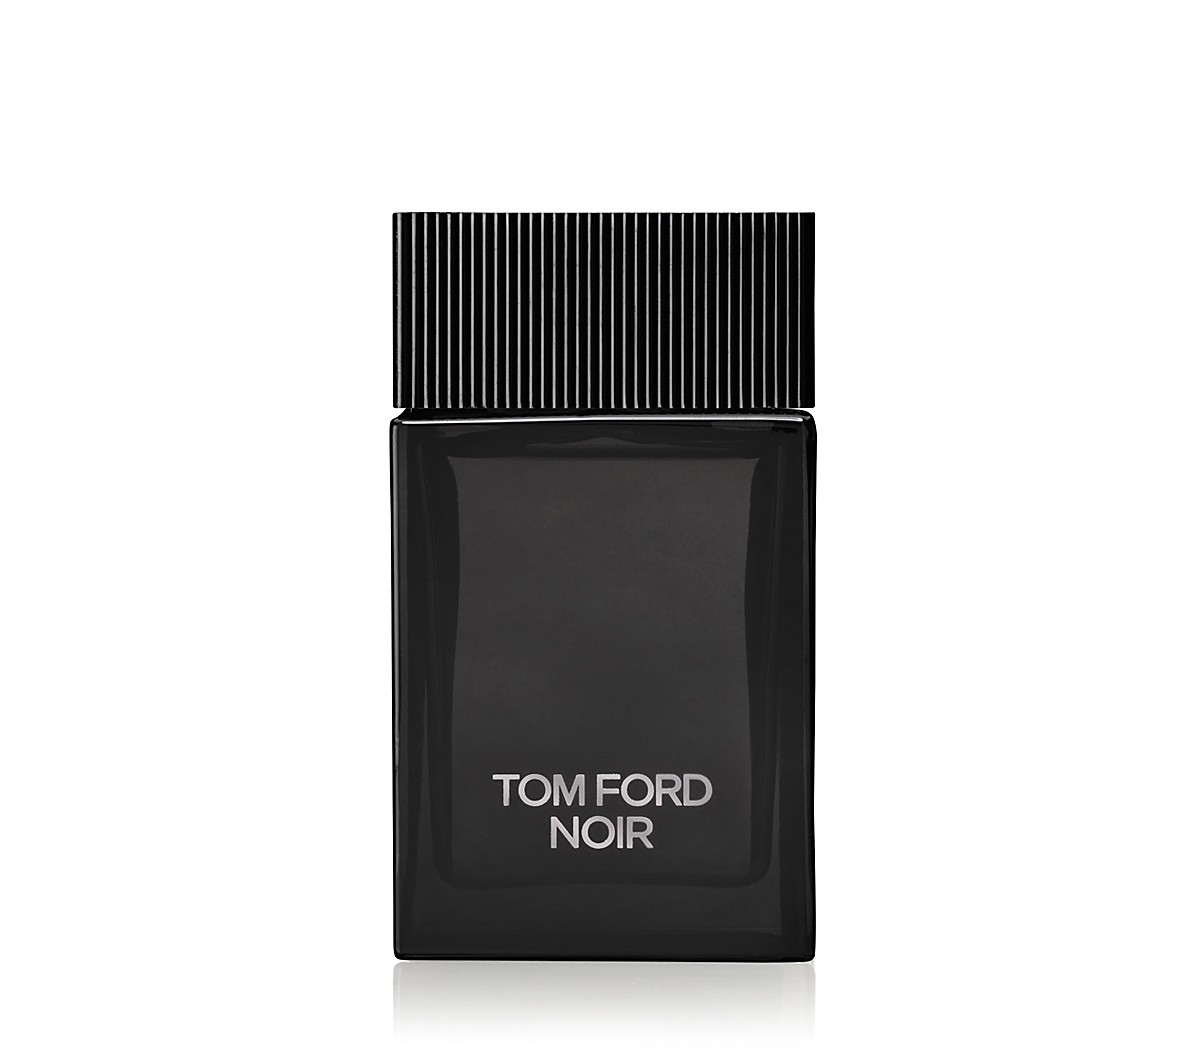 Tom-Ford-Noir-100ml-EDP-for-Men-bottle